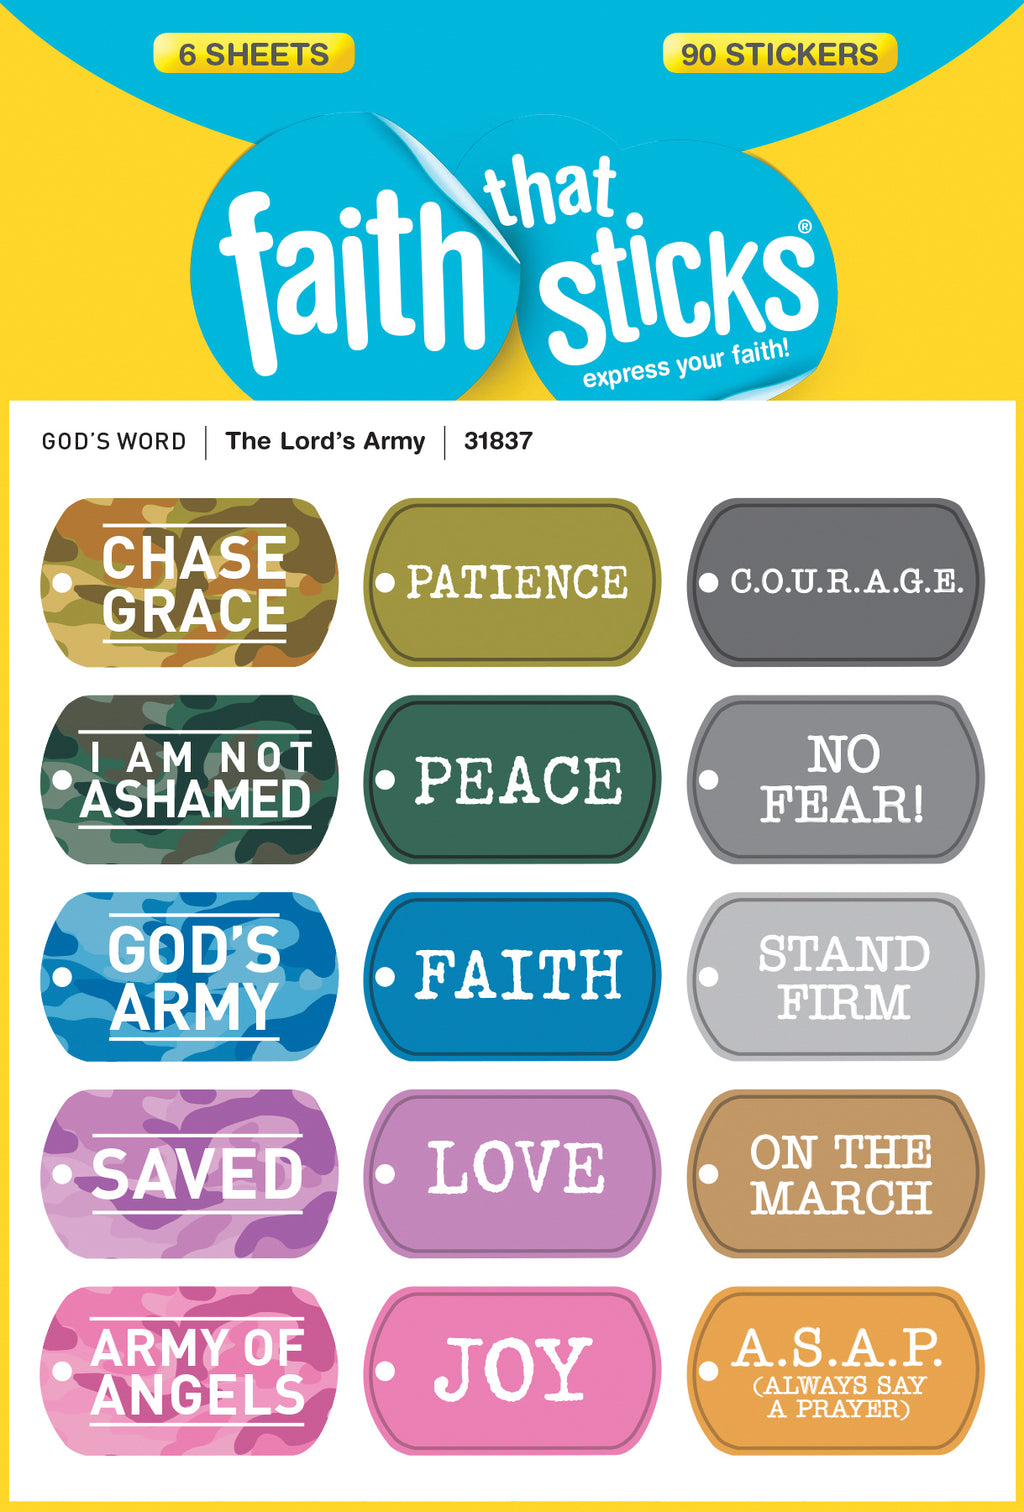 Sticker-The Lord's Army (6 Sheets) (Faith That Sticks)